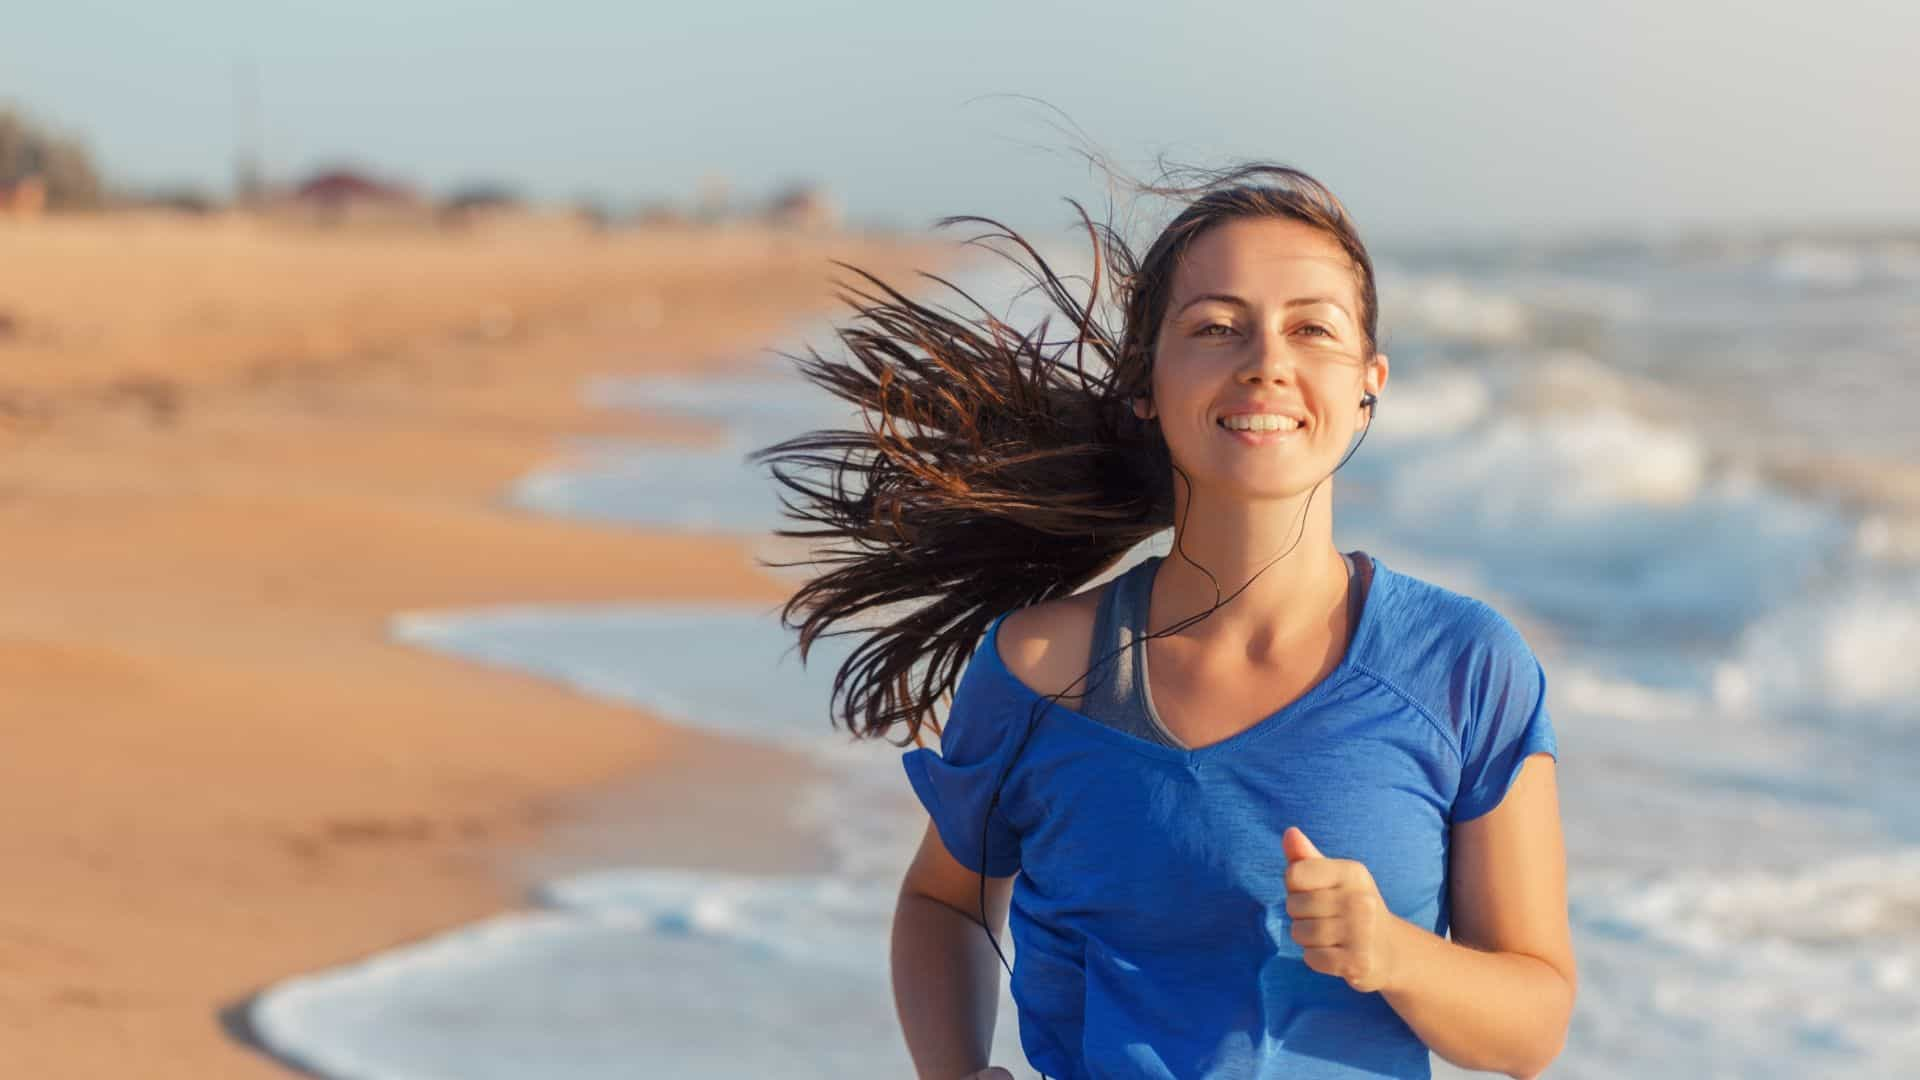 Improve Your Health by Running on the Beach